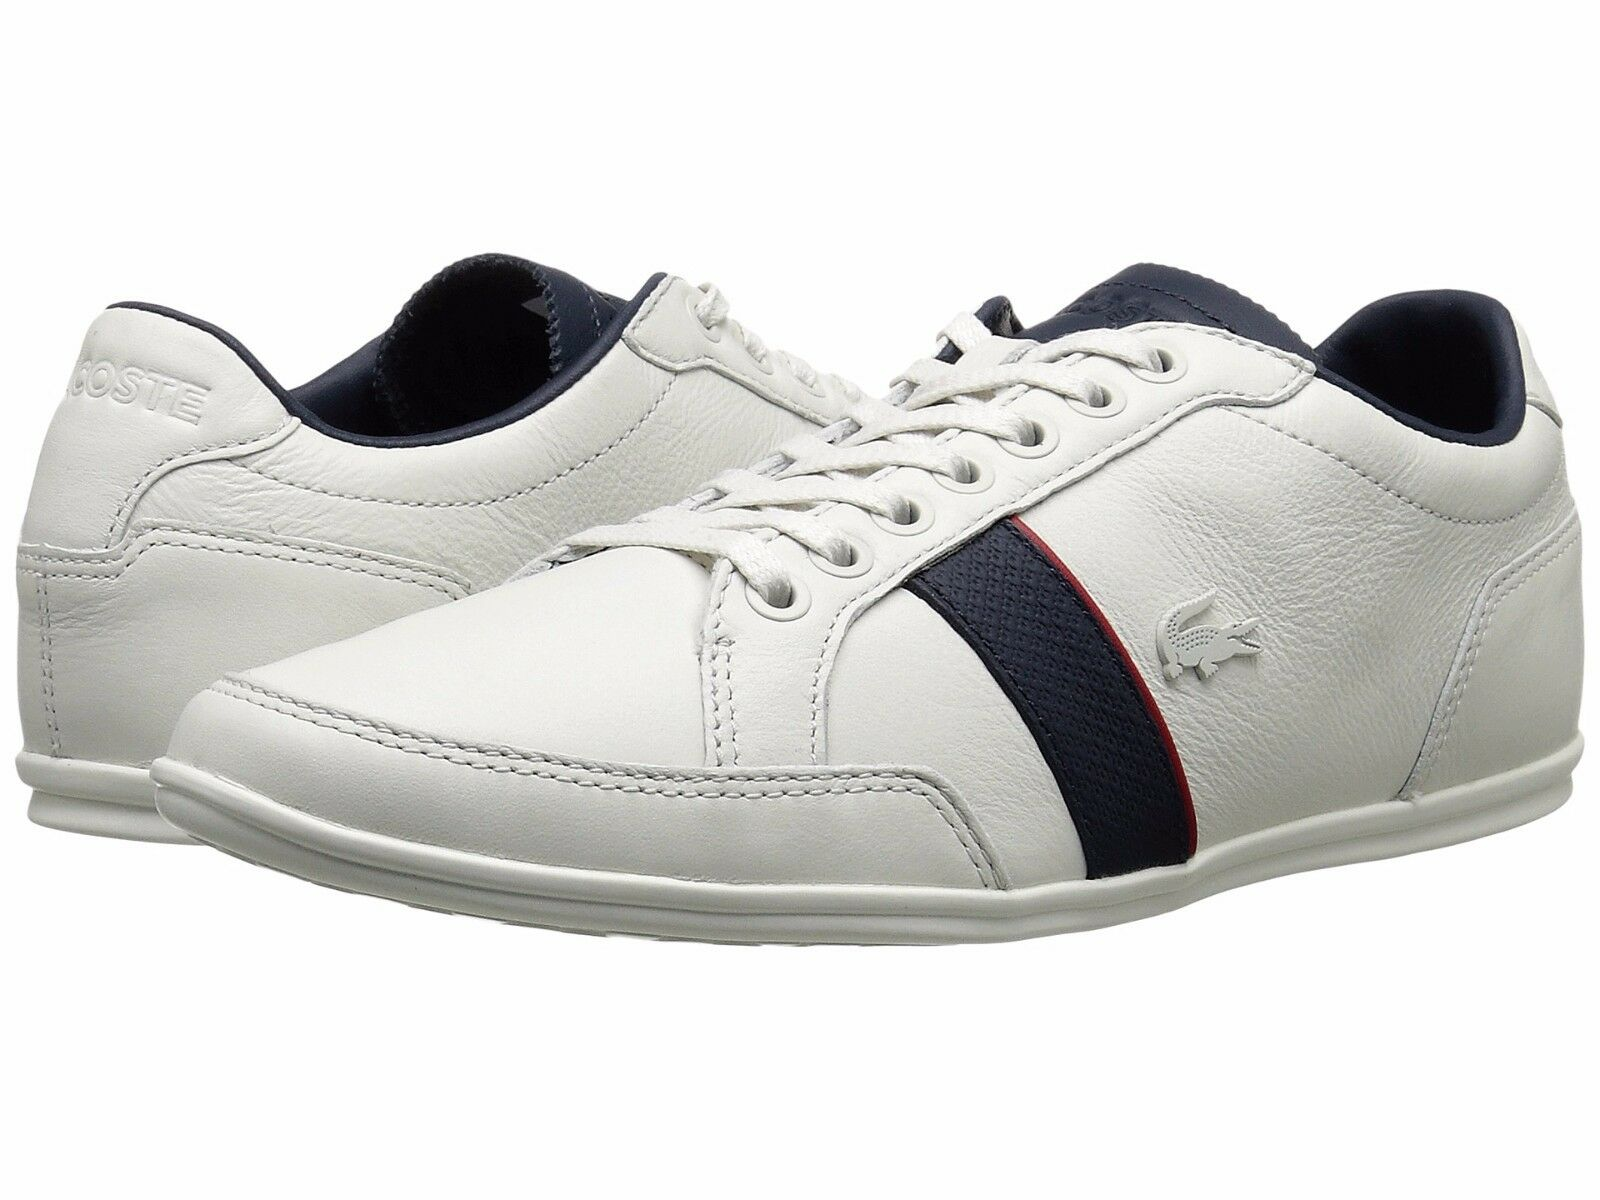 New Lacoste Men Alisos 116 Weiß Weiß Weiß Leather Lace up casual Fashion schuhe Turnschuhe 719e8b